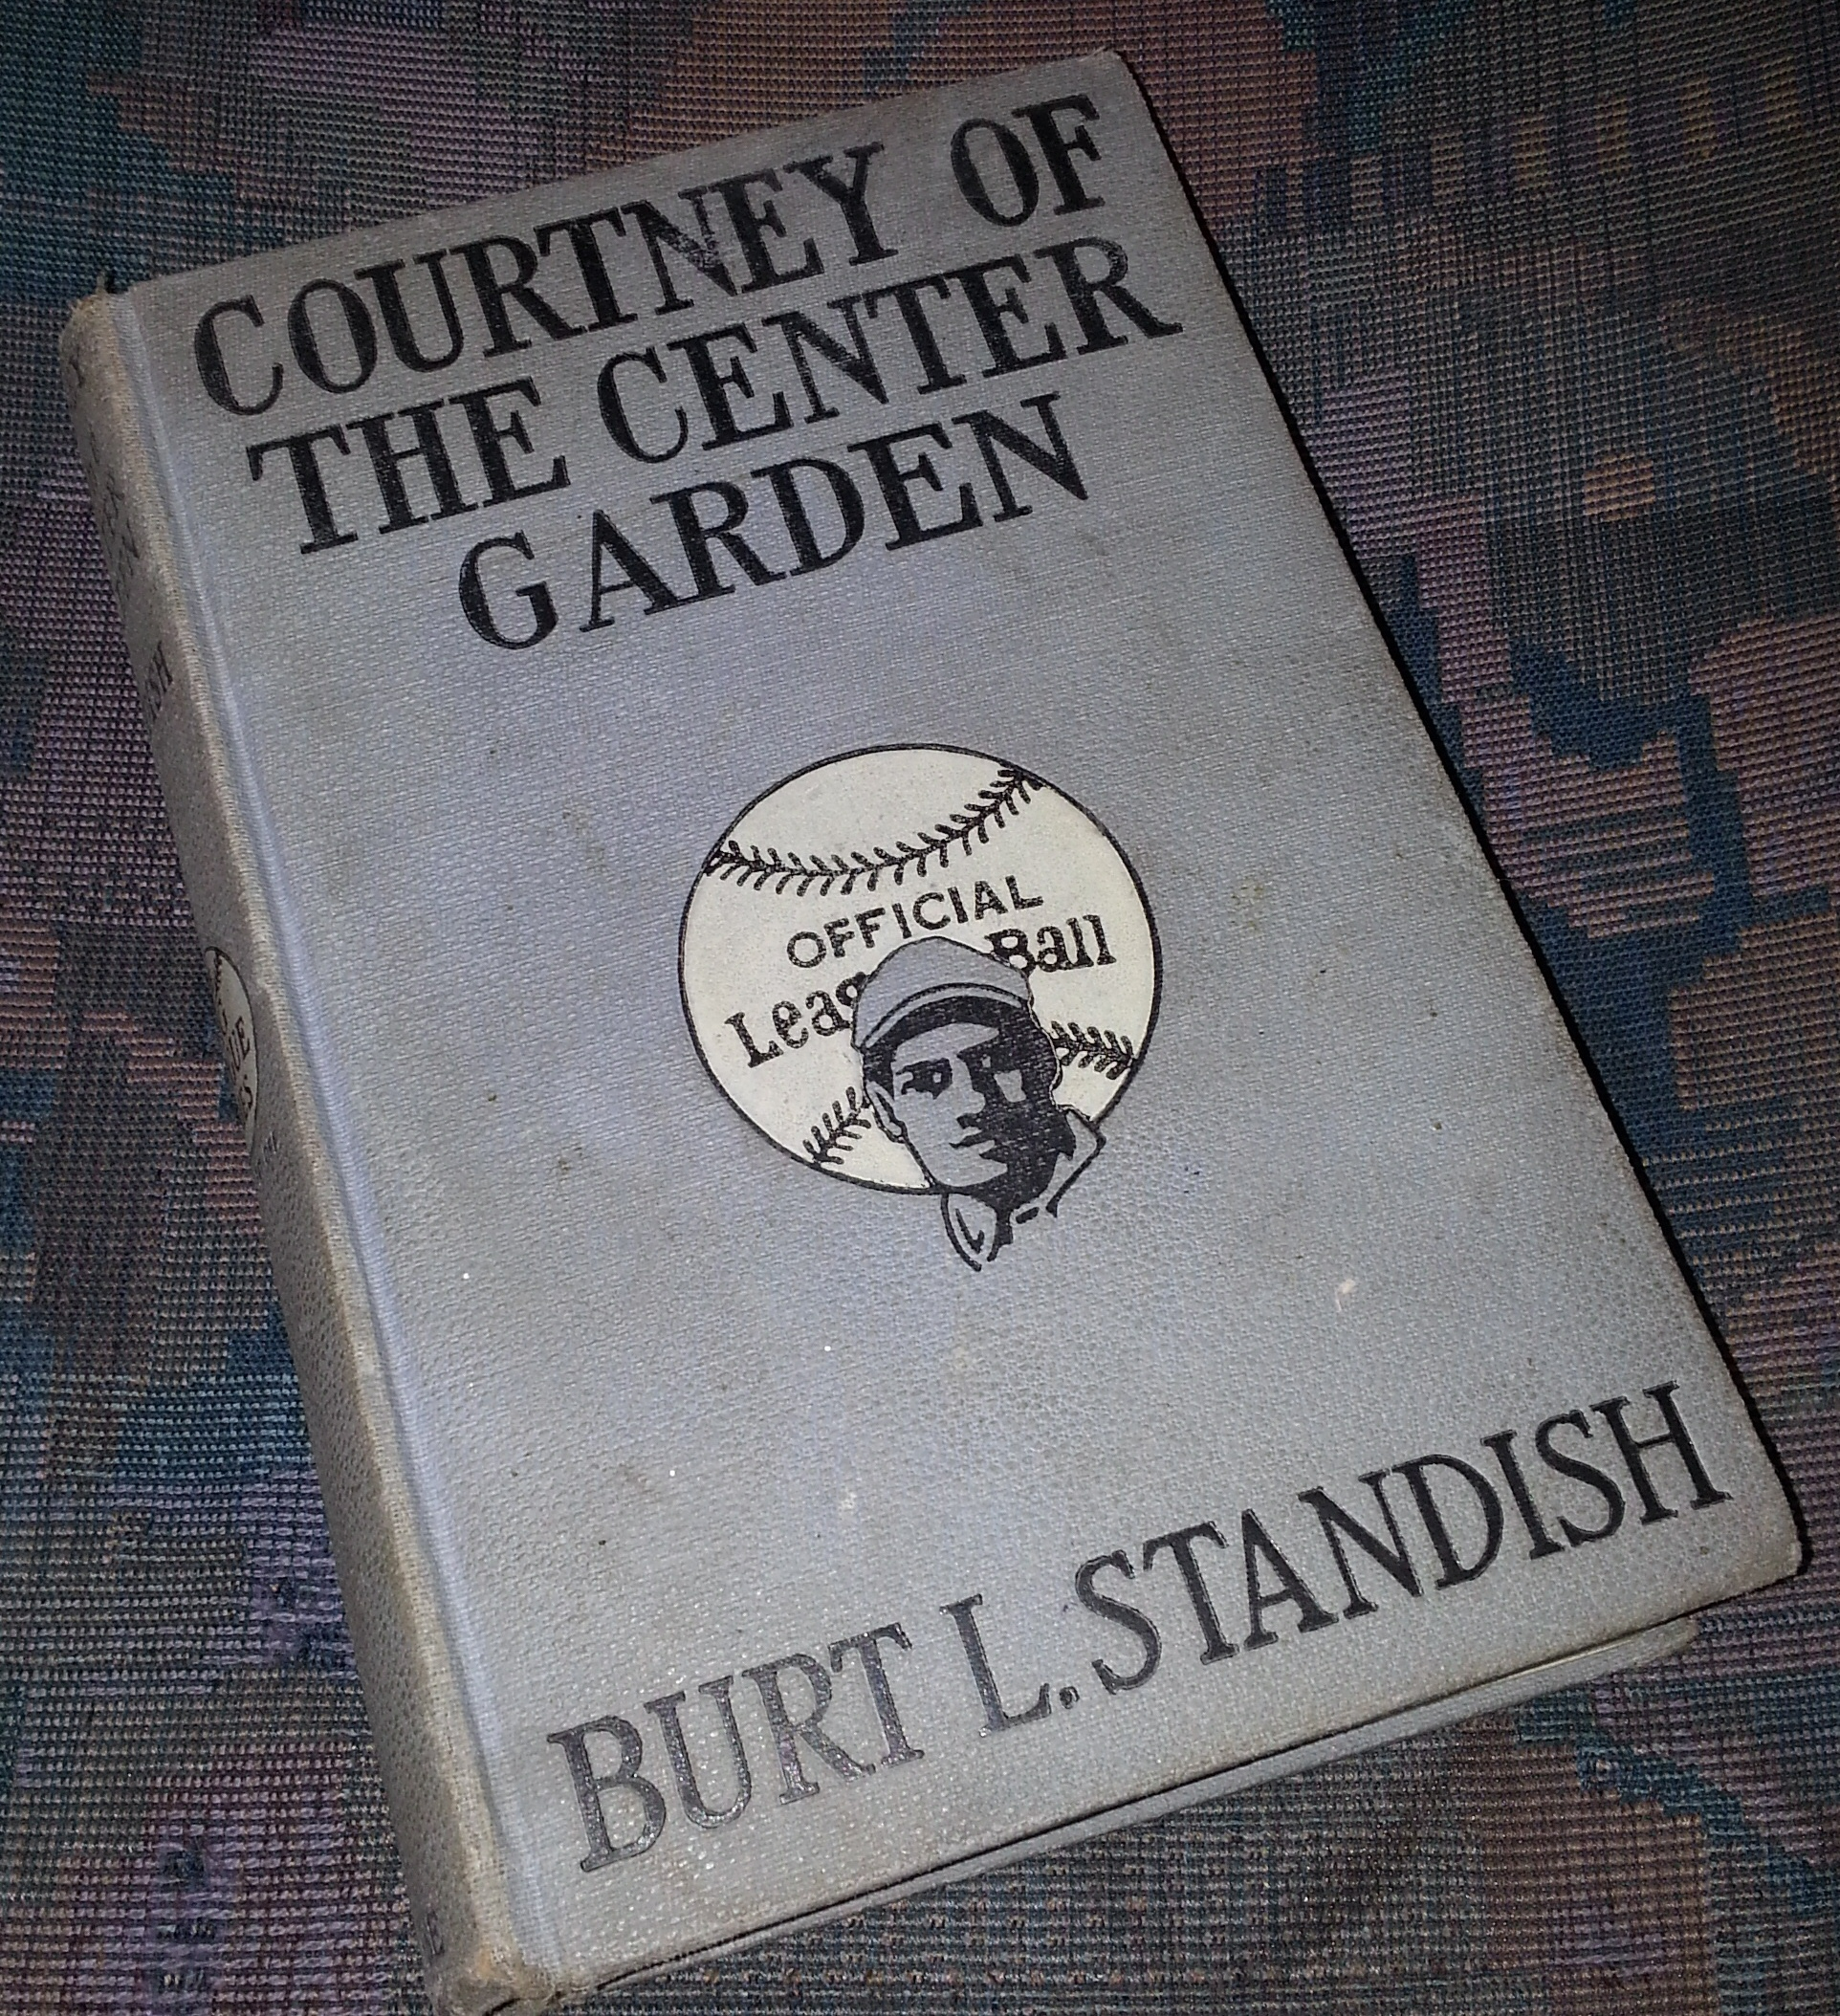 Courtney Center Garden (Big League Series #7 ), Standish, Burt L.